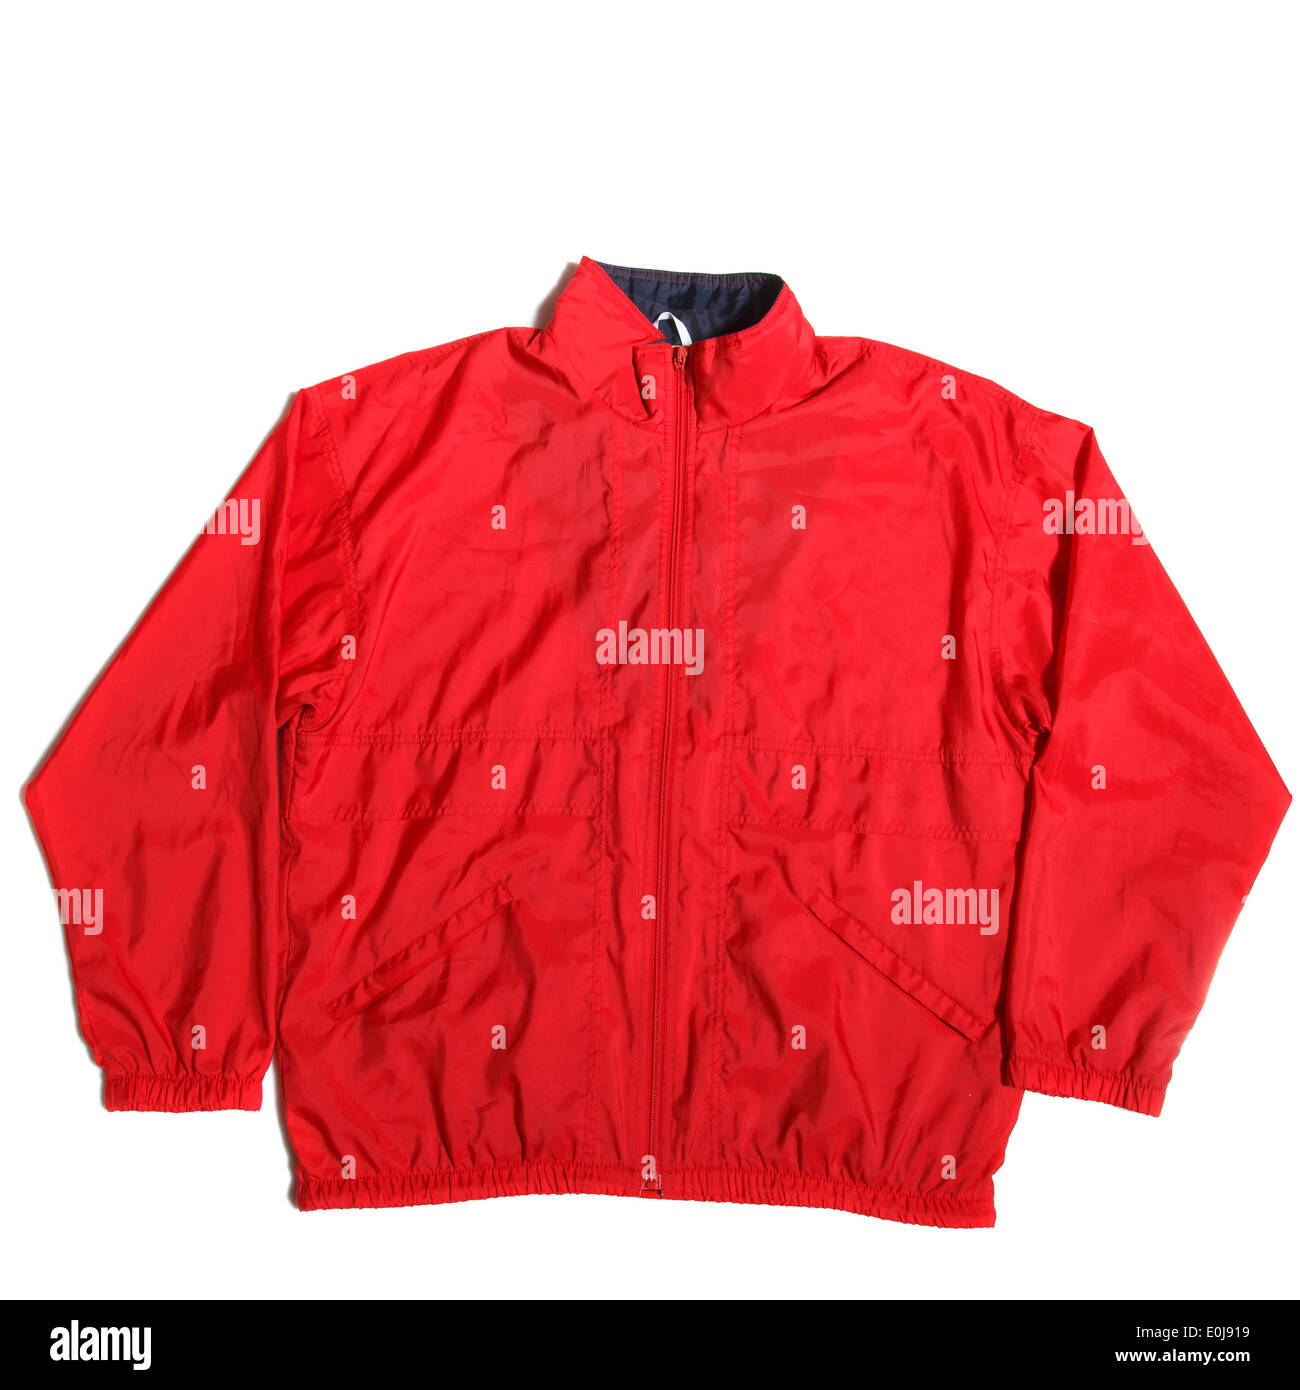 red jacket - Stock Image